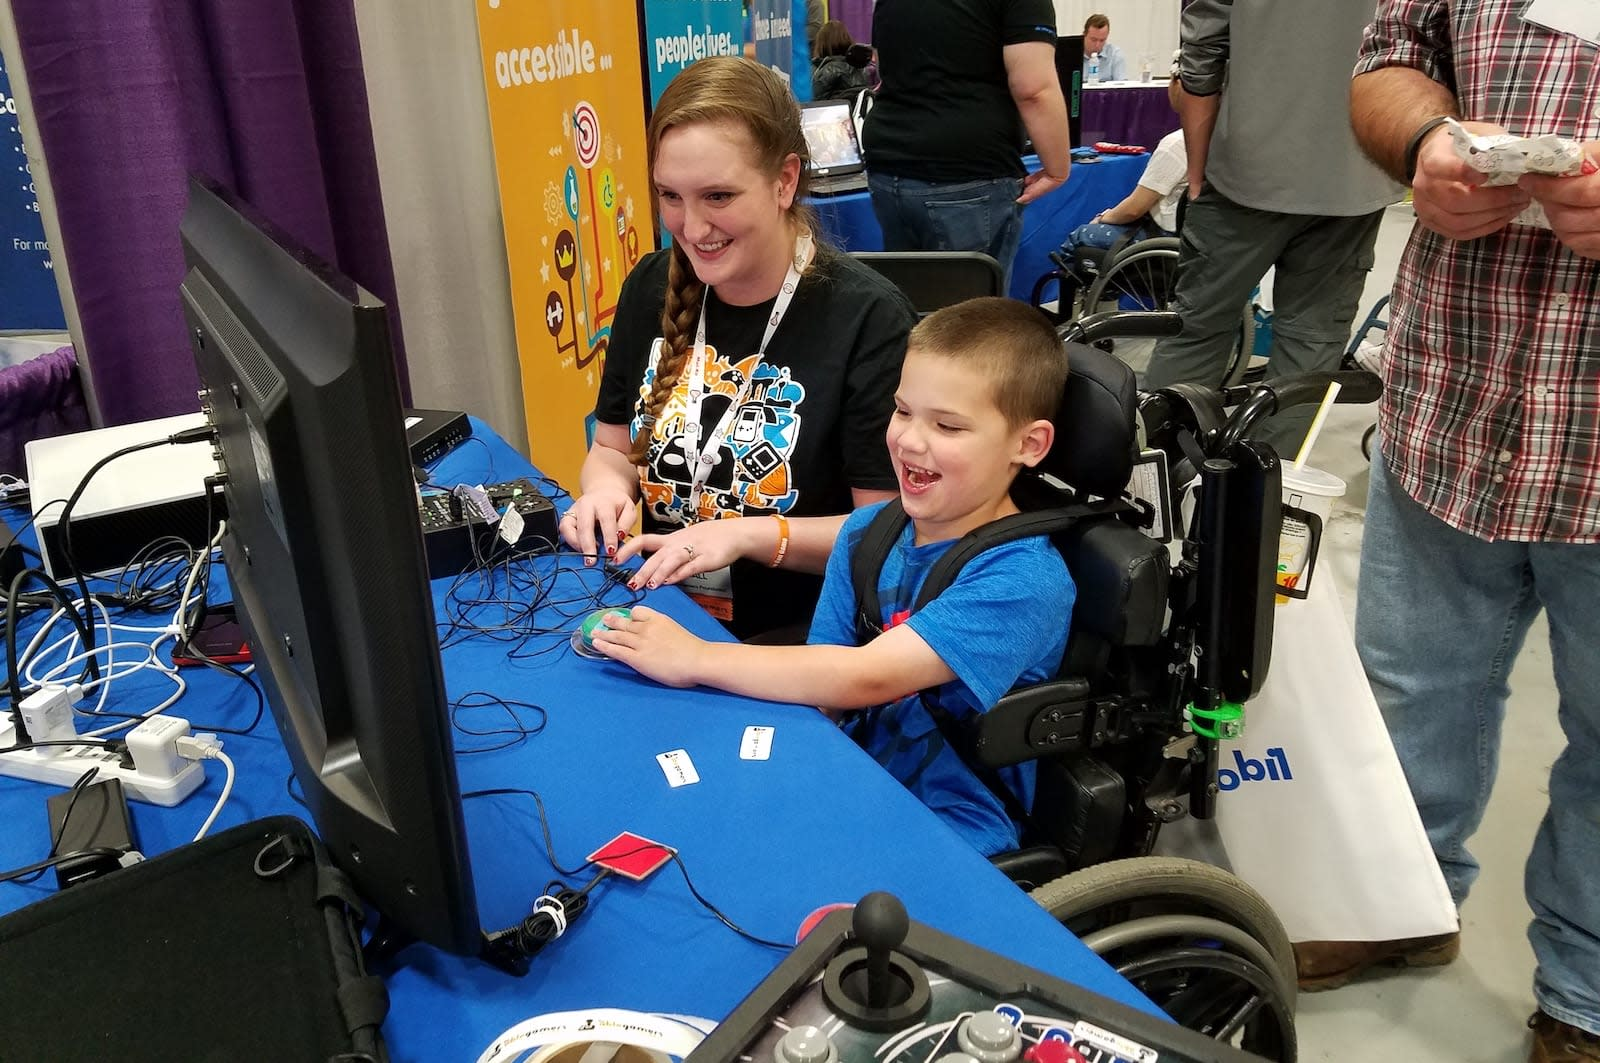 AbleGamers at the NY Abilities Expo 2016